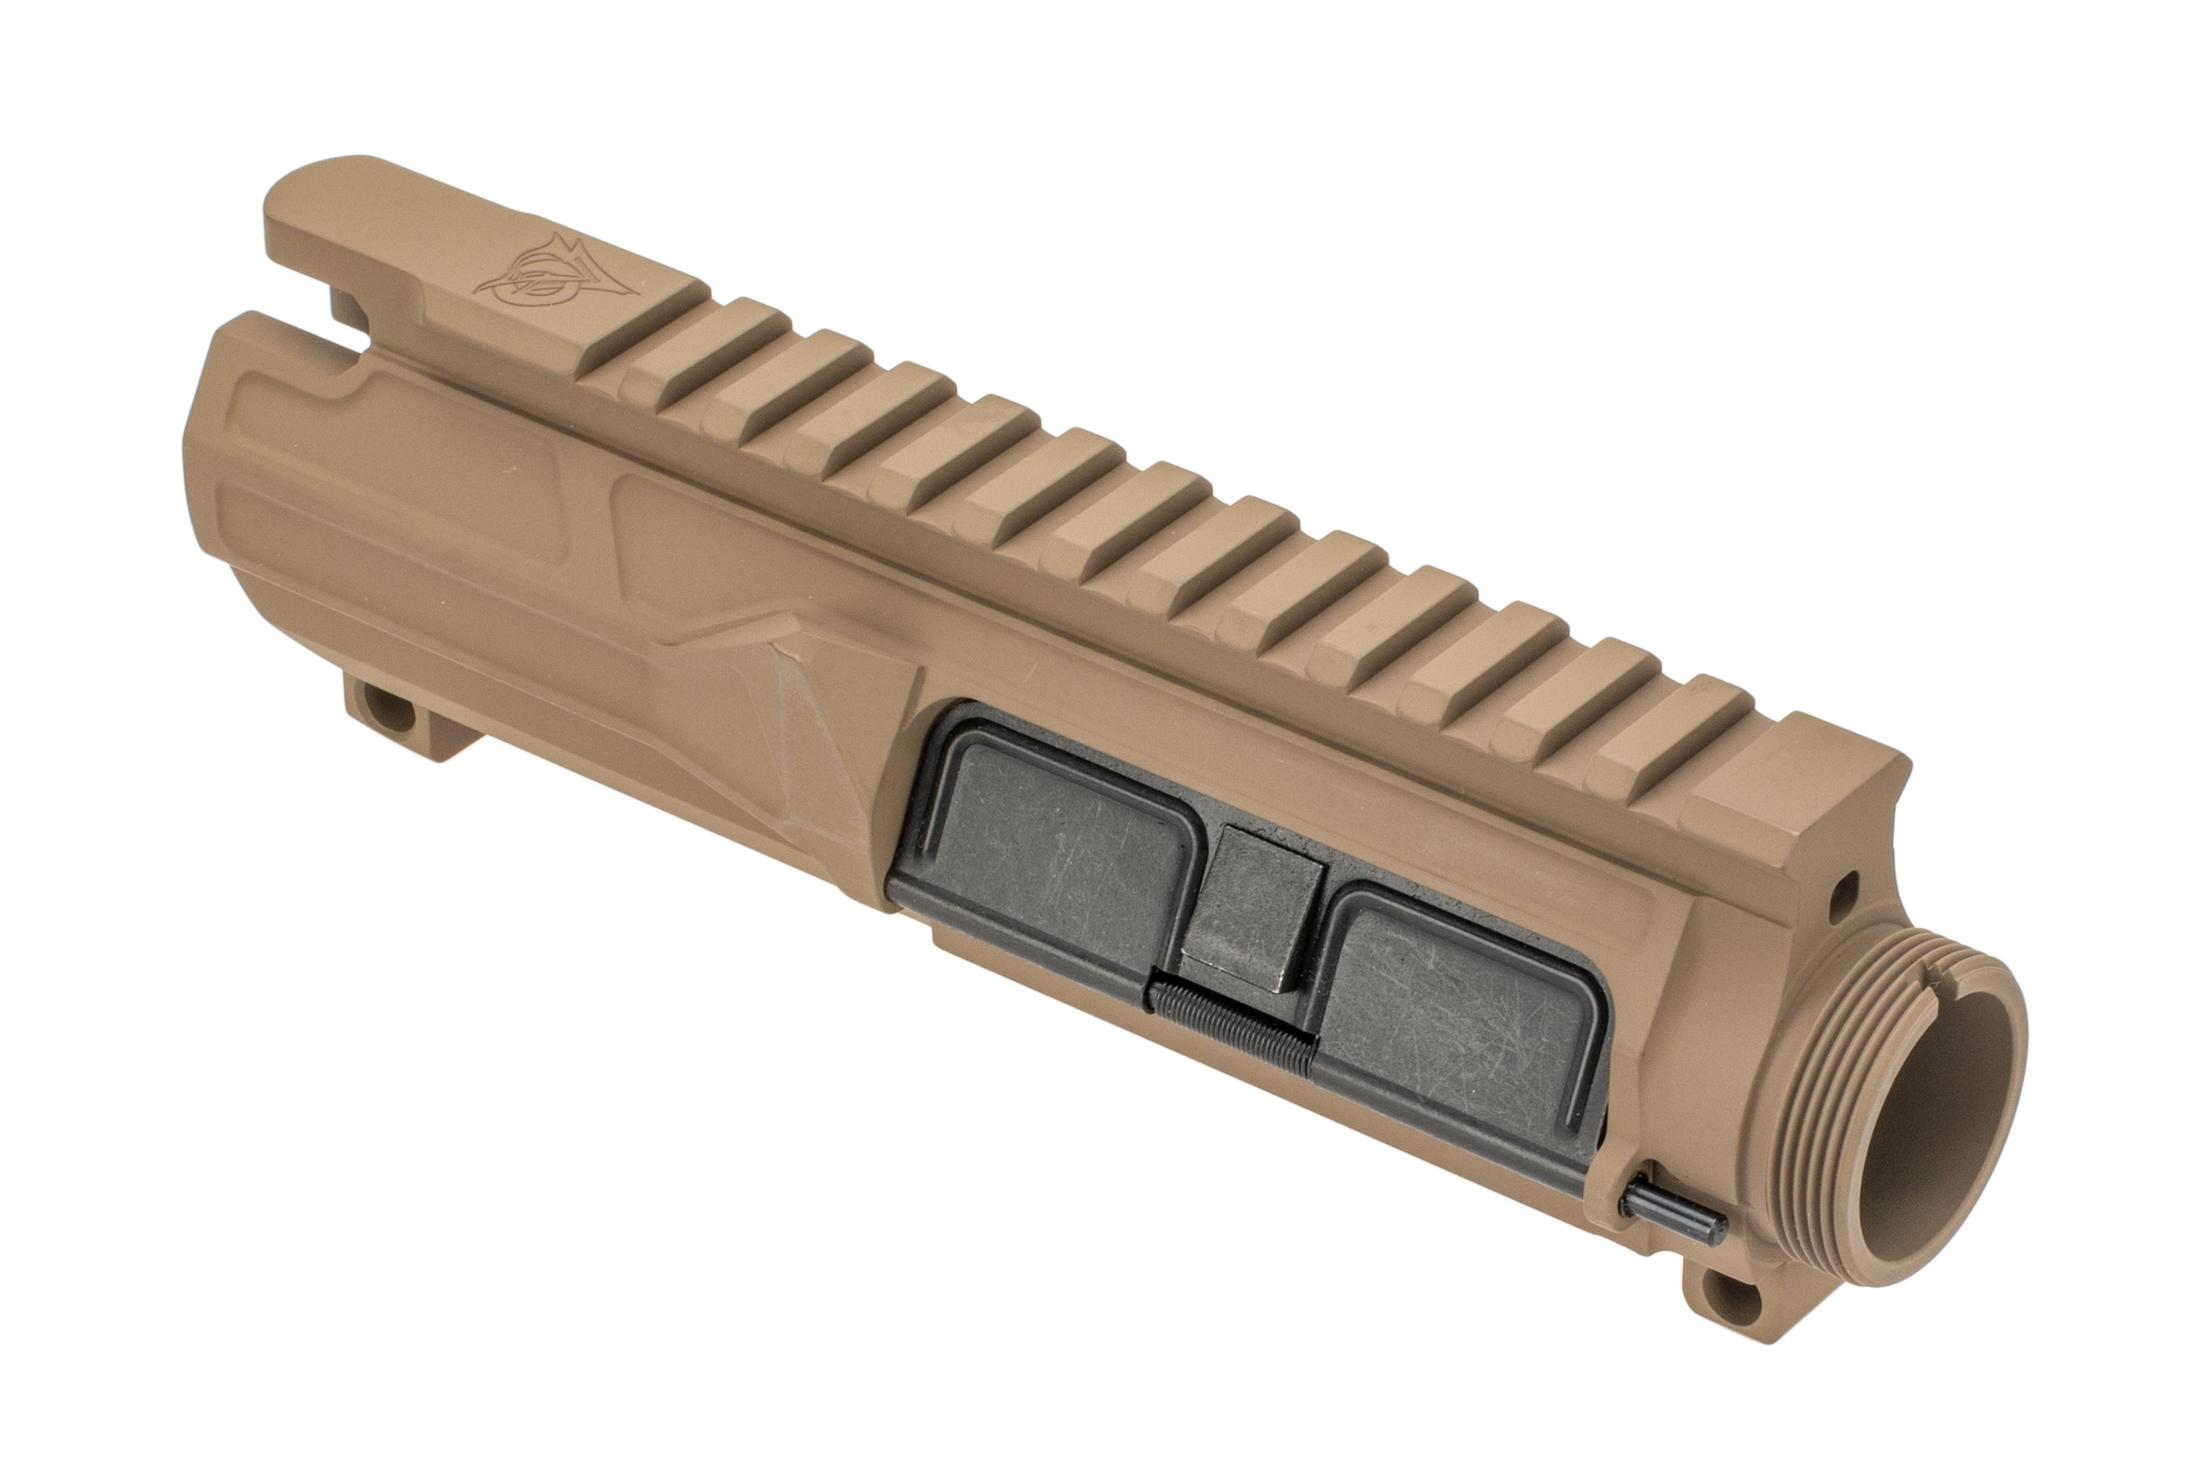 Odin Works AR15 billet upper receiver group features a flat dark earth cerakote finish